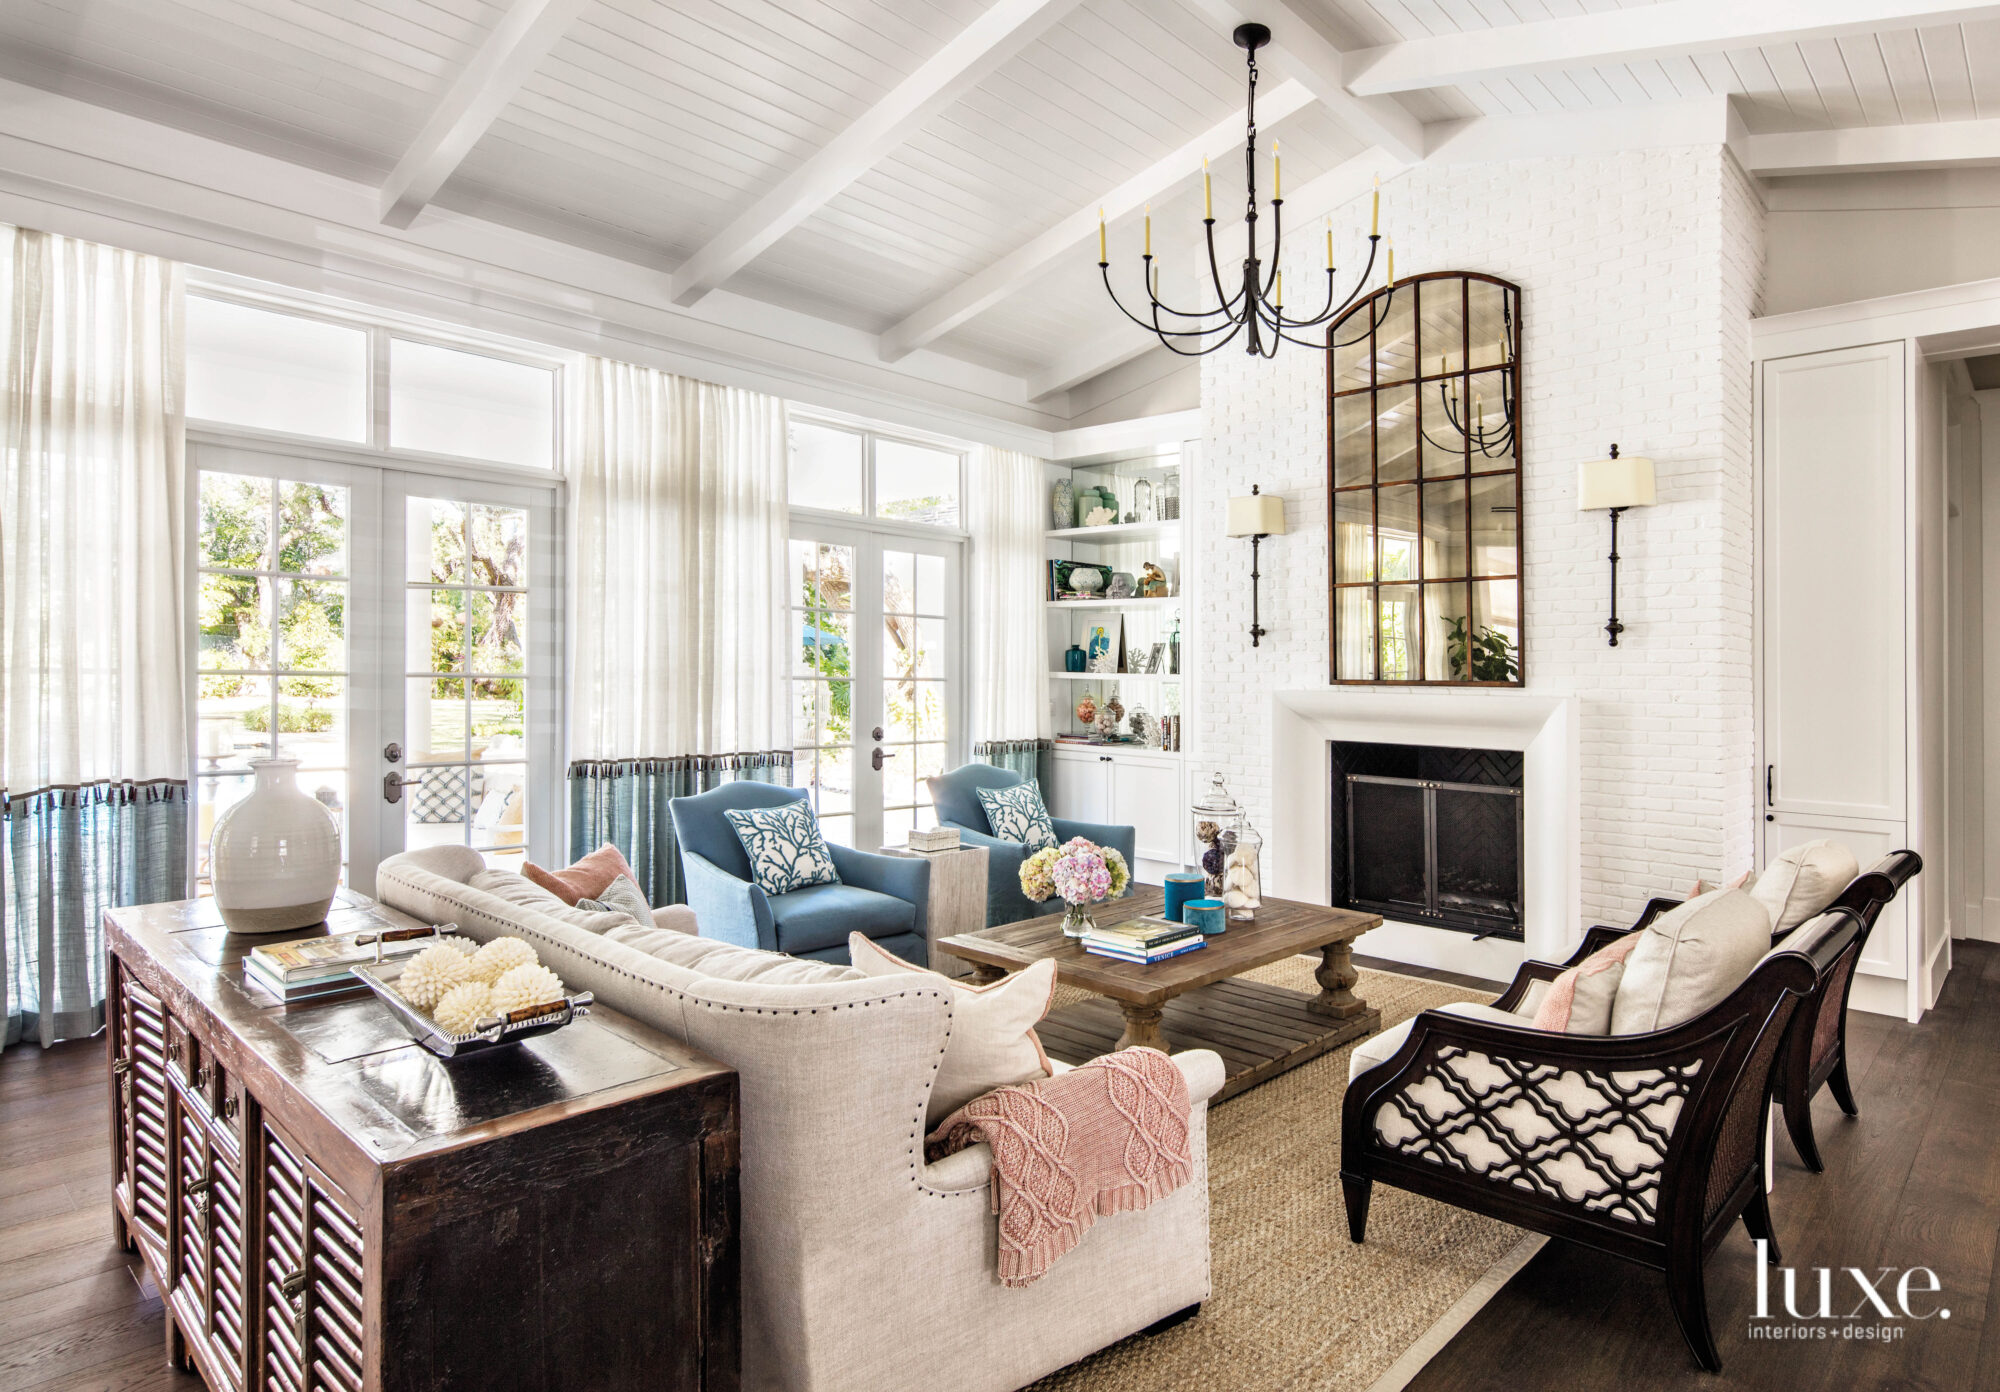 A Miami Reno With A Breezy Hamptons Vibe Offers Relaxed Style Luxe Interiors Design